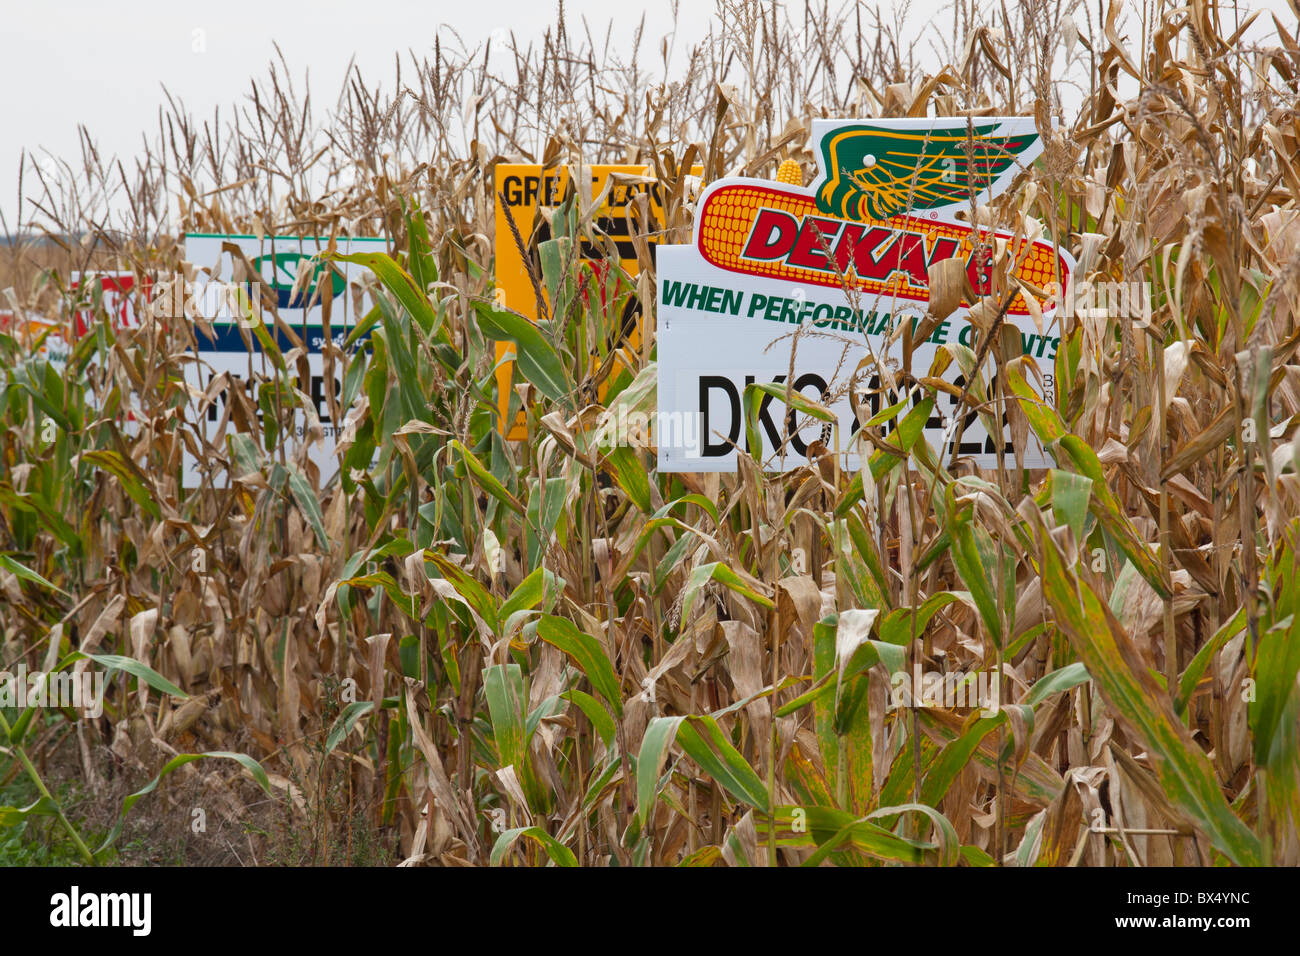 St. Nazianz, Wisconsin - Signs mark different crop varieties in a corn field. - Stock Image